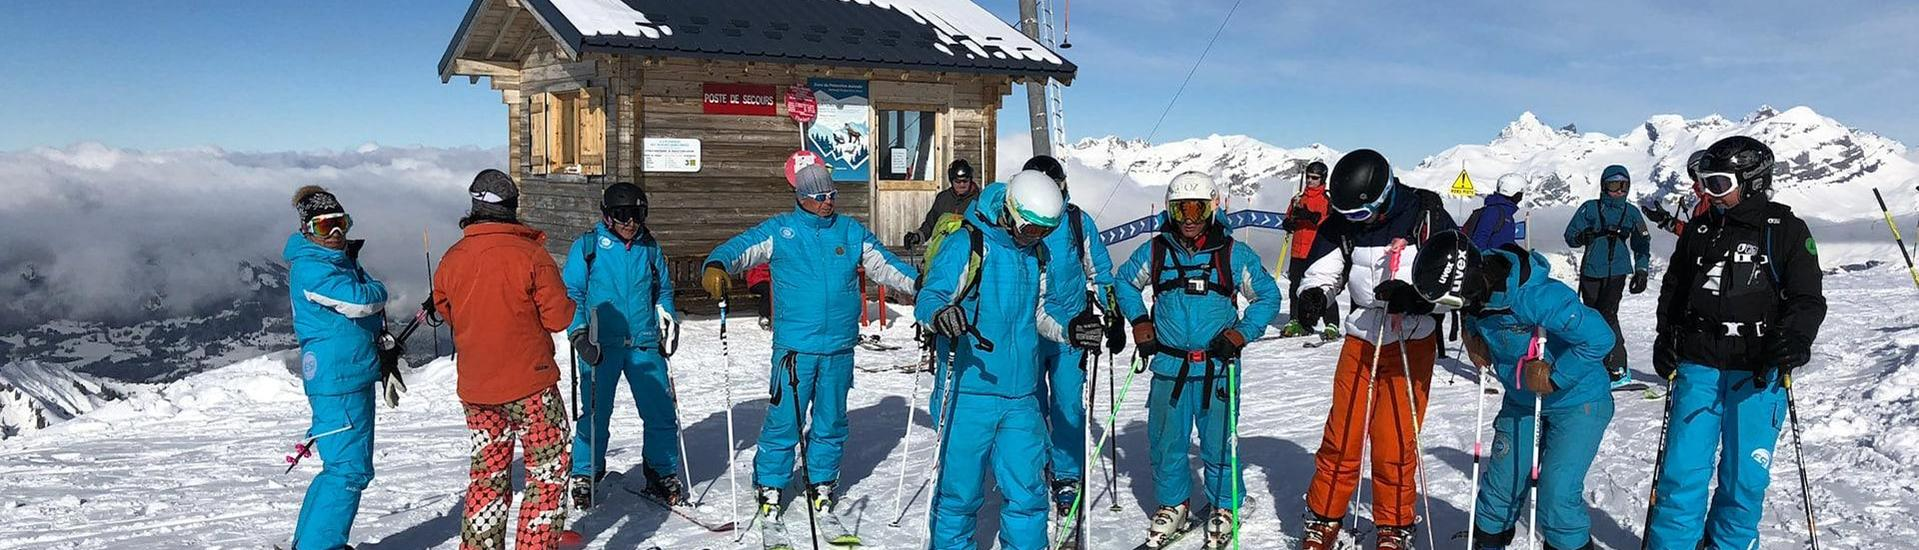 Ski Lessons Teens & Adults - Flaine - Beginner - Afternoon